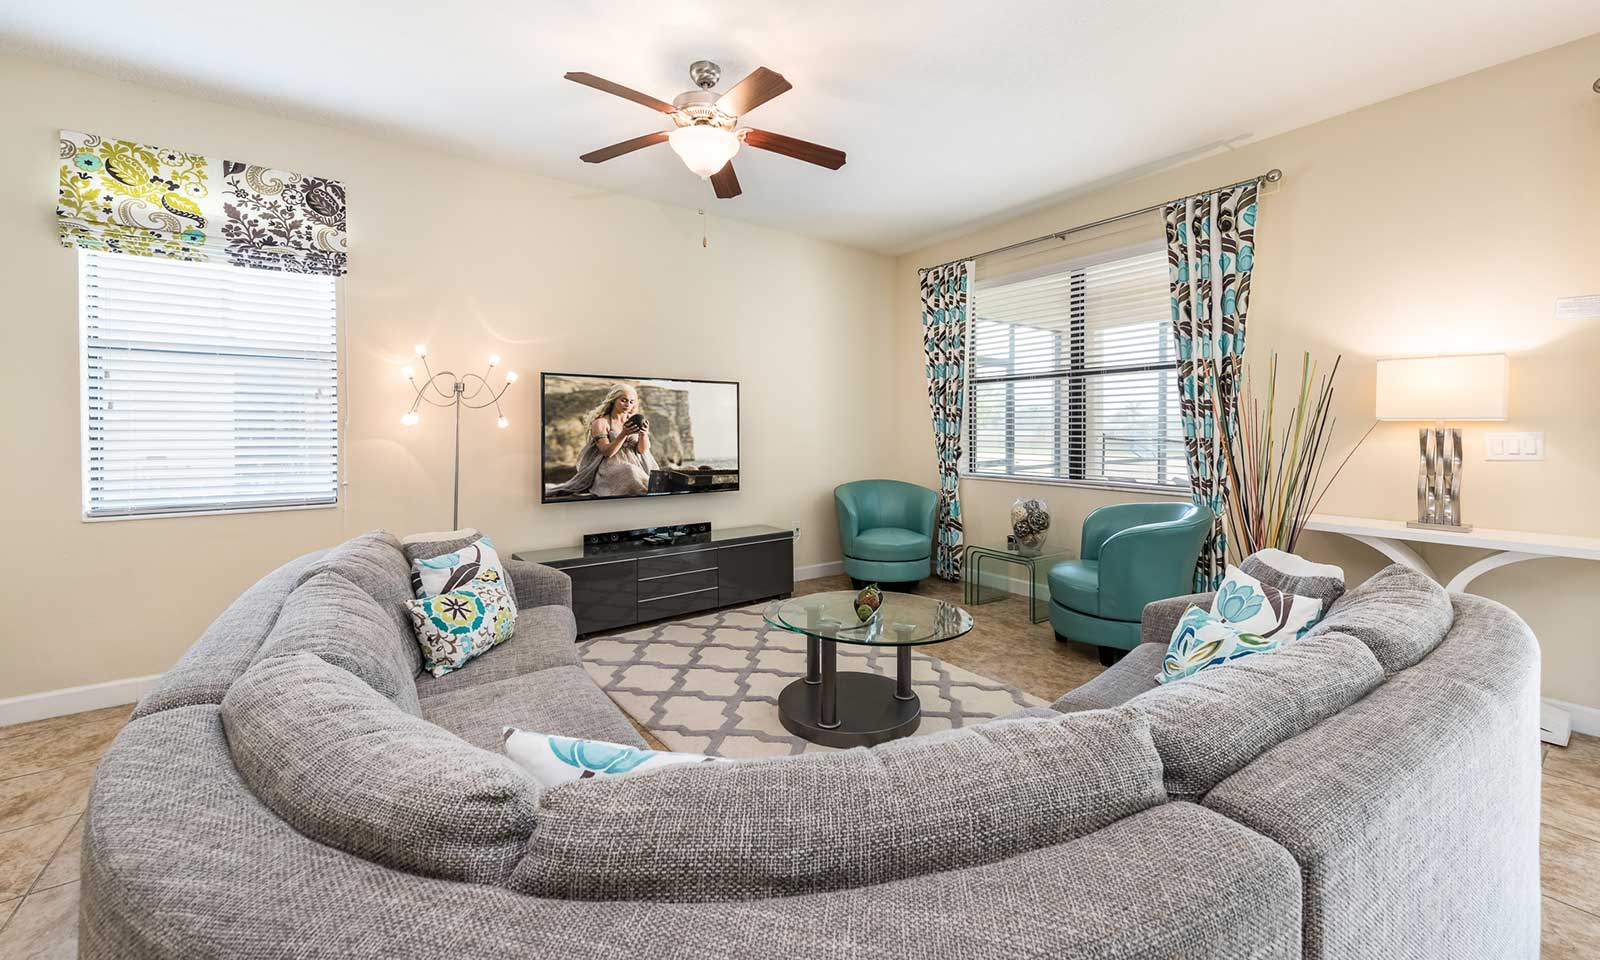 The Chic Haven-179398